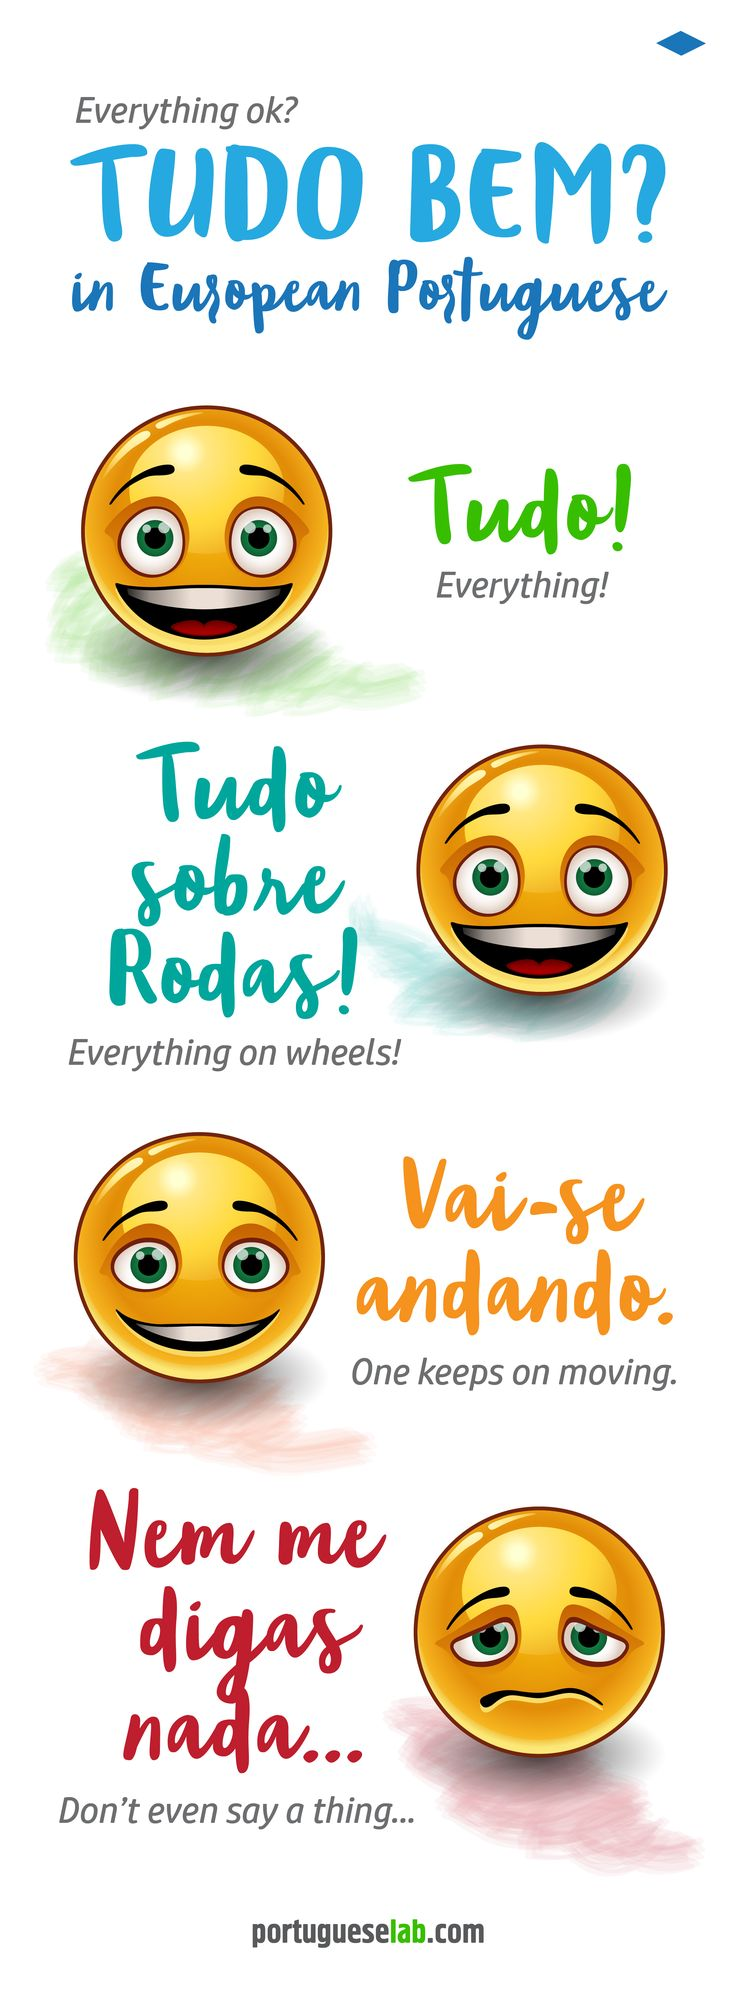 33 best learn portuguese images on pinterest learn portuguese learn european portuguese how to greet someone in an informal way tu m4hsunfo